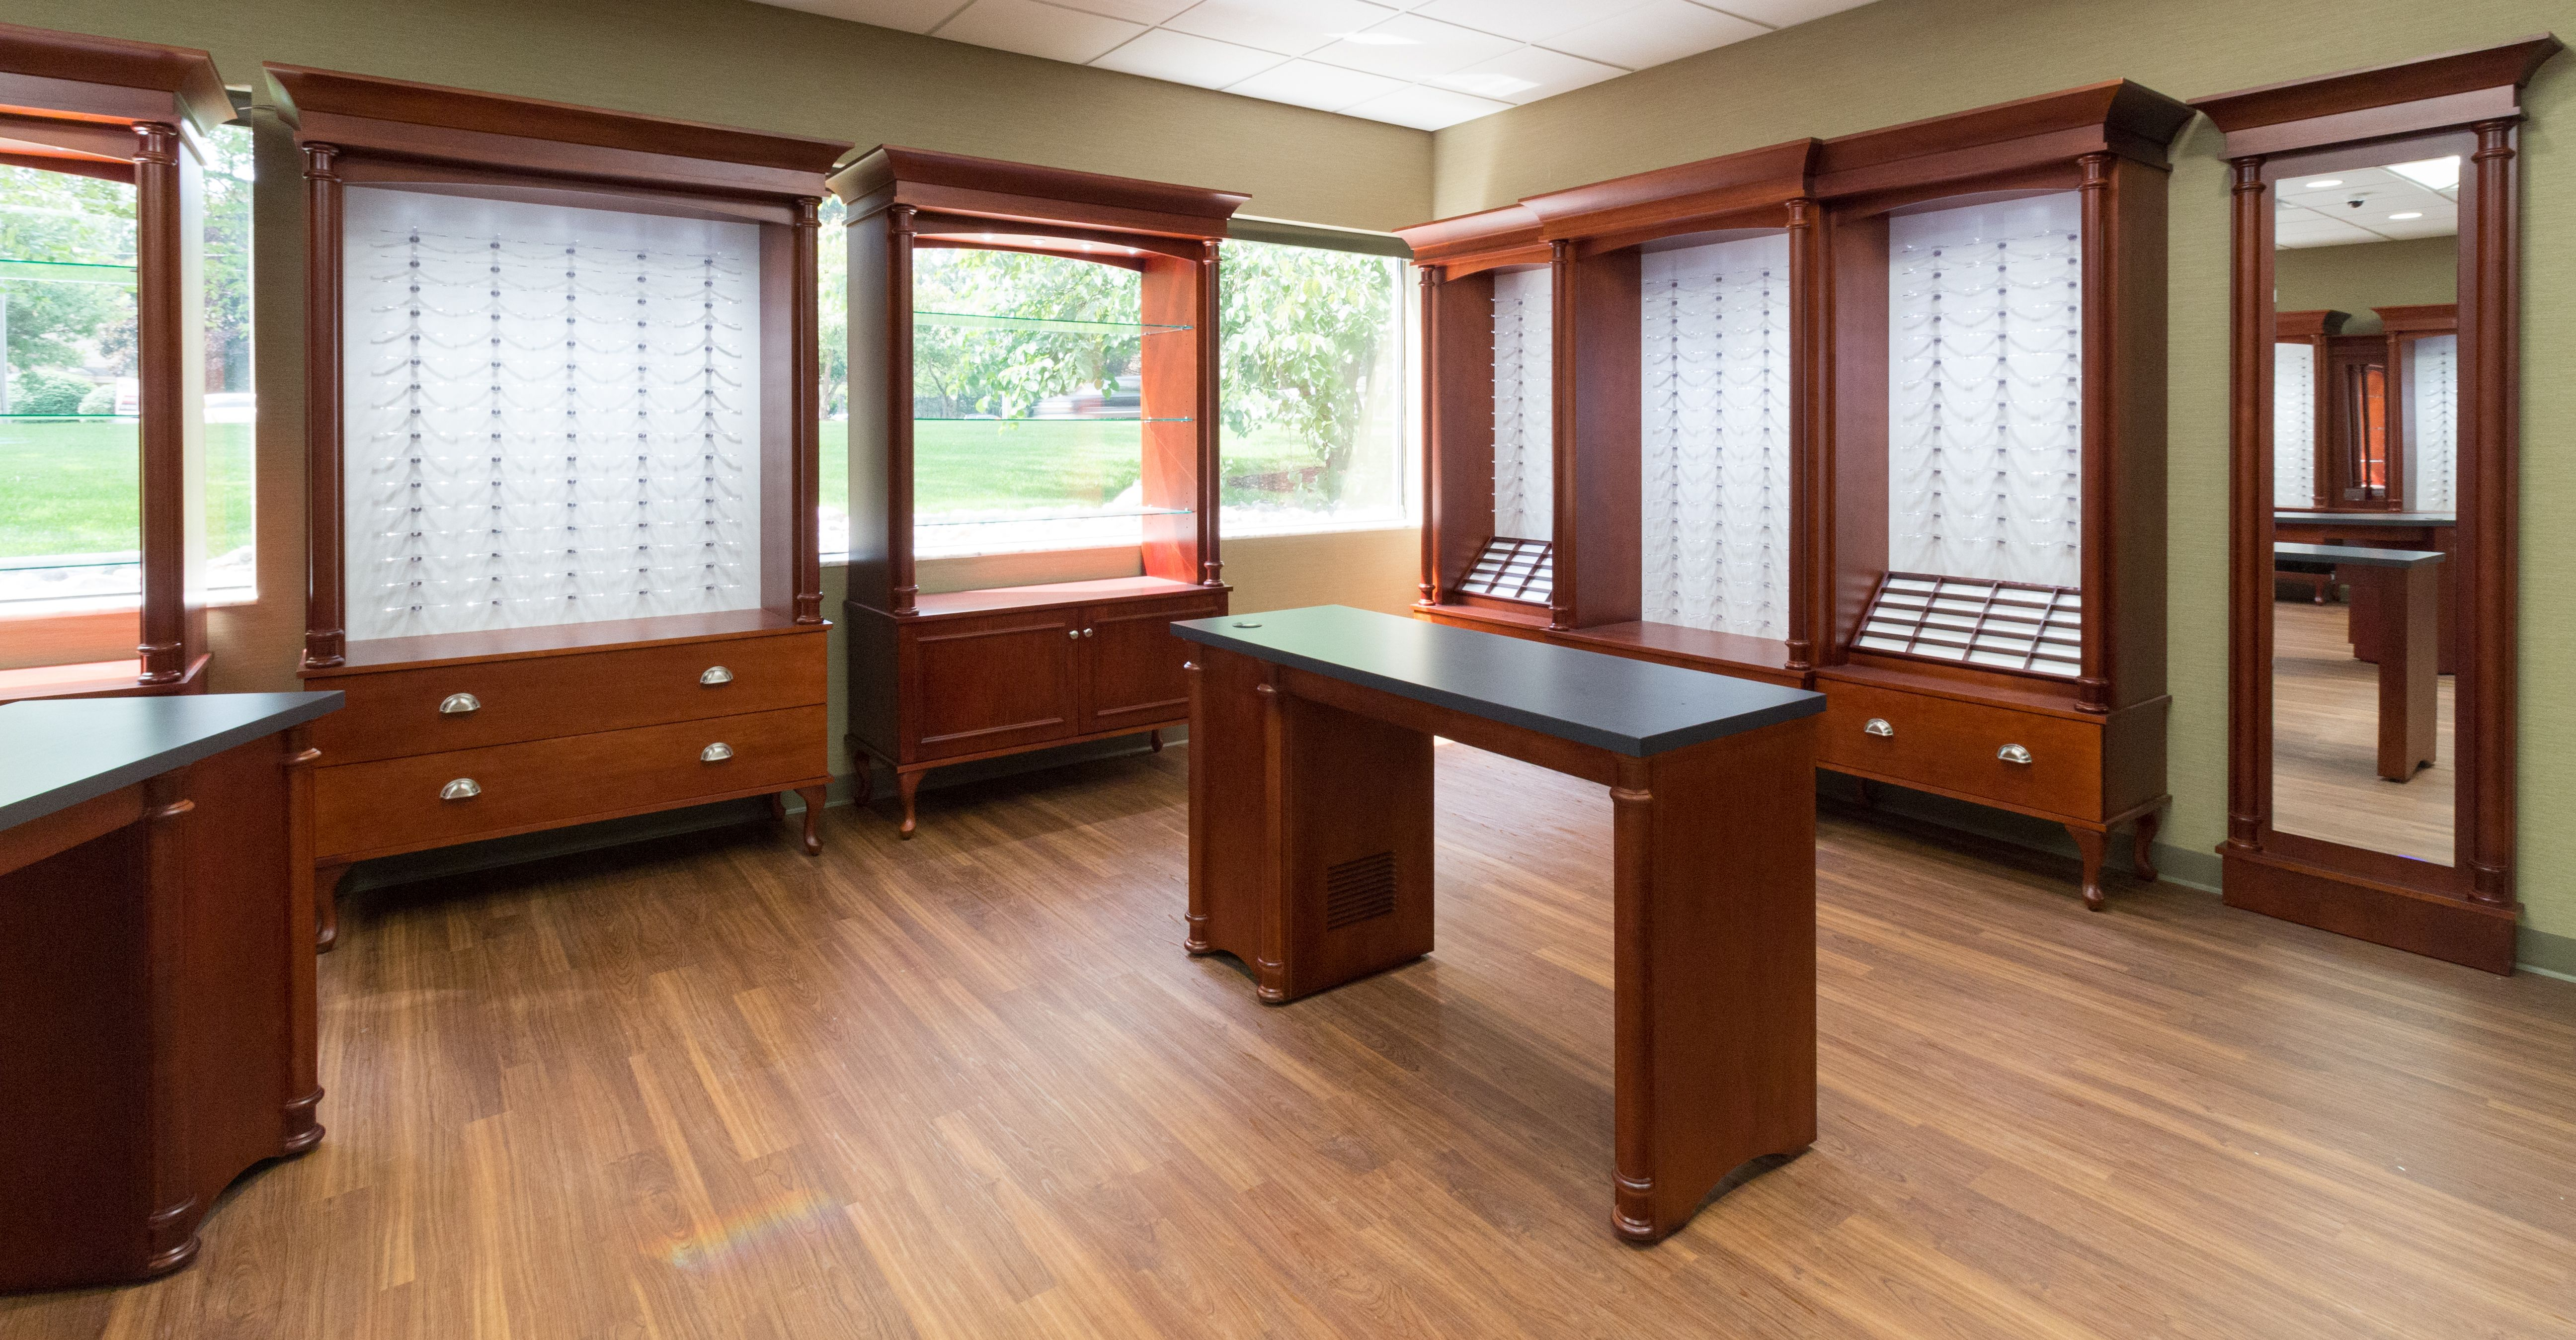 Eyeglass Display Cabinets